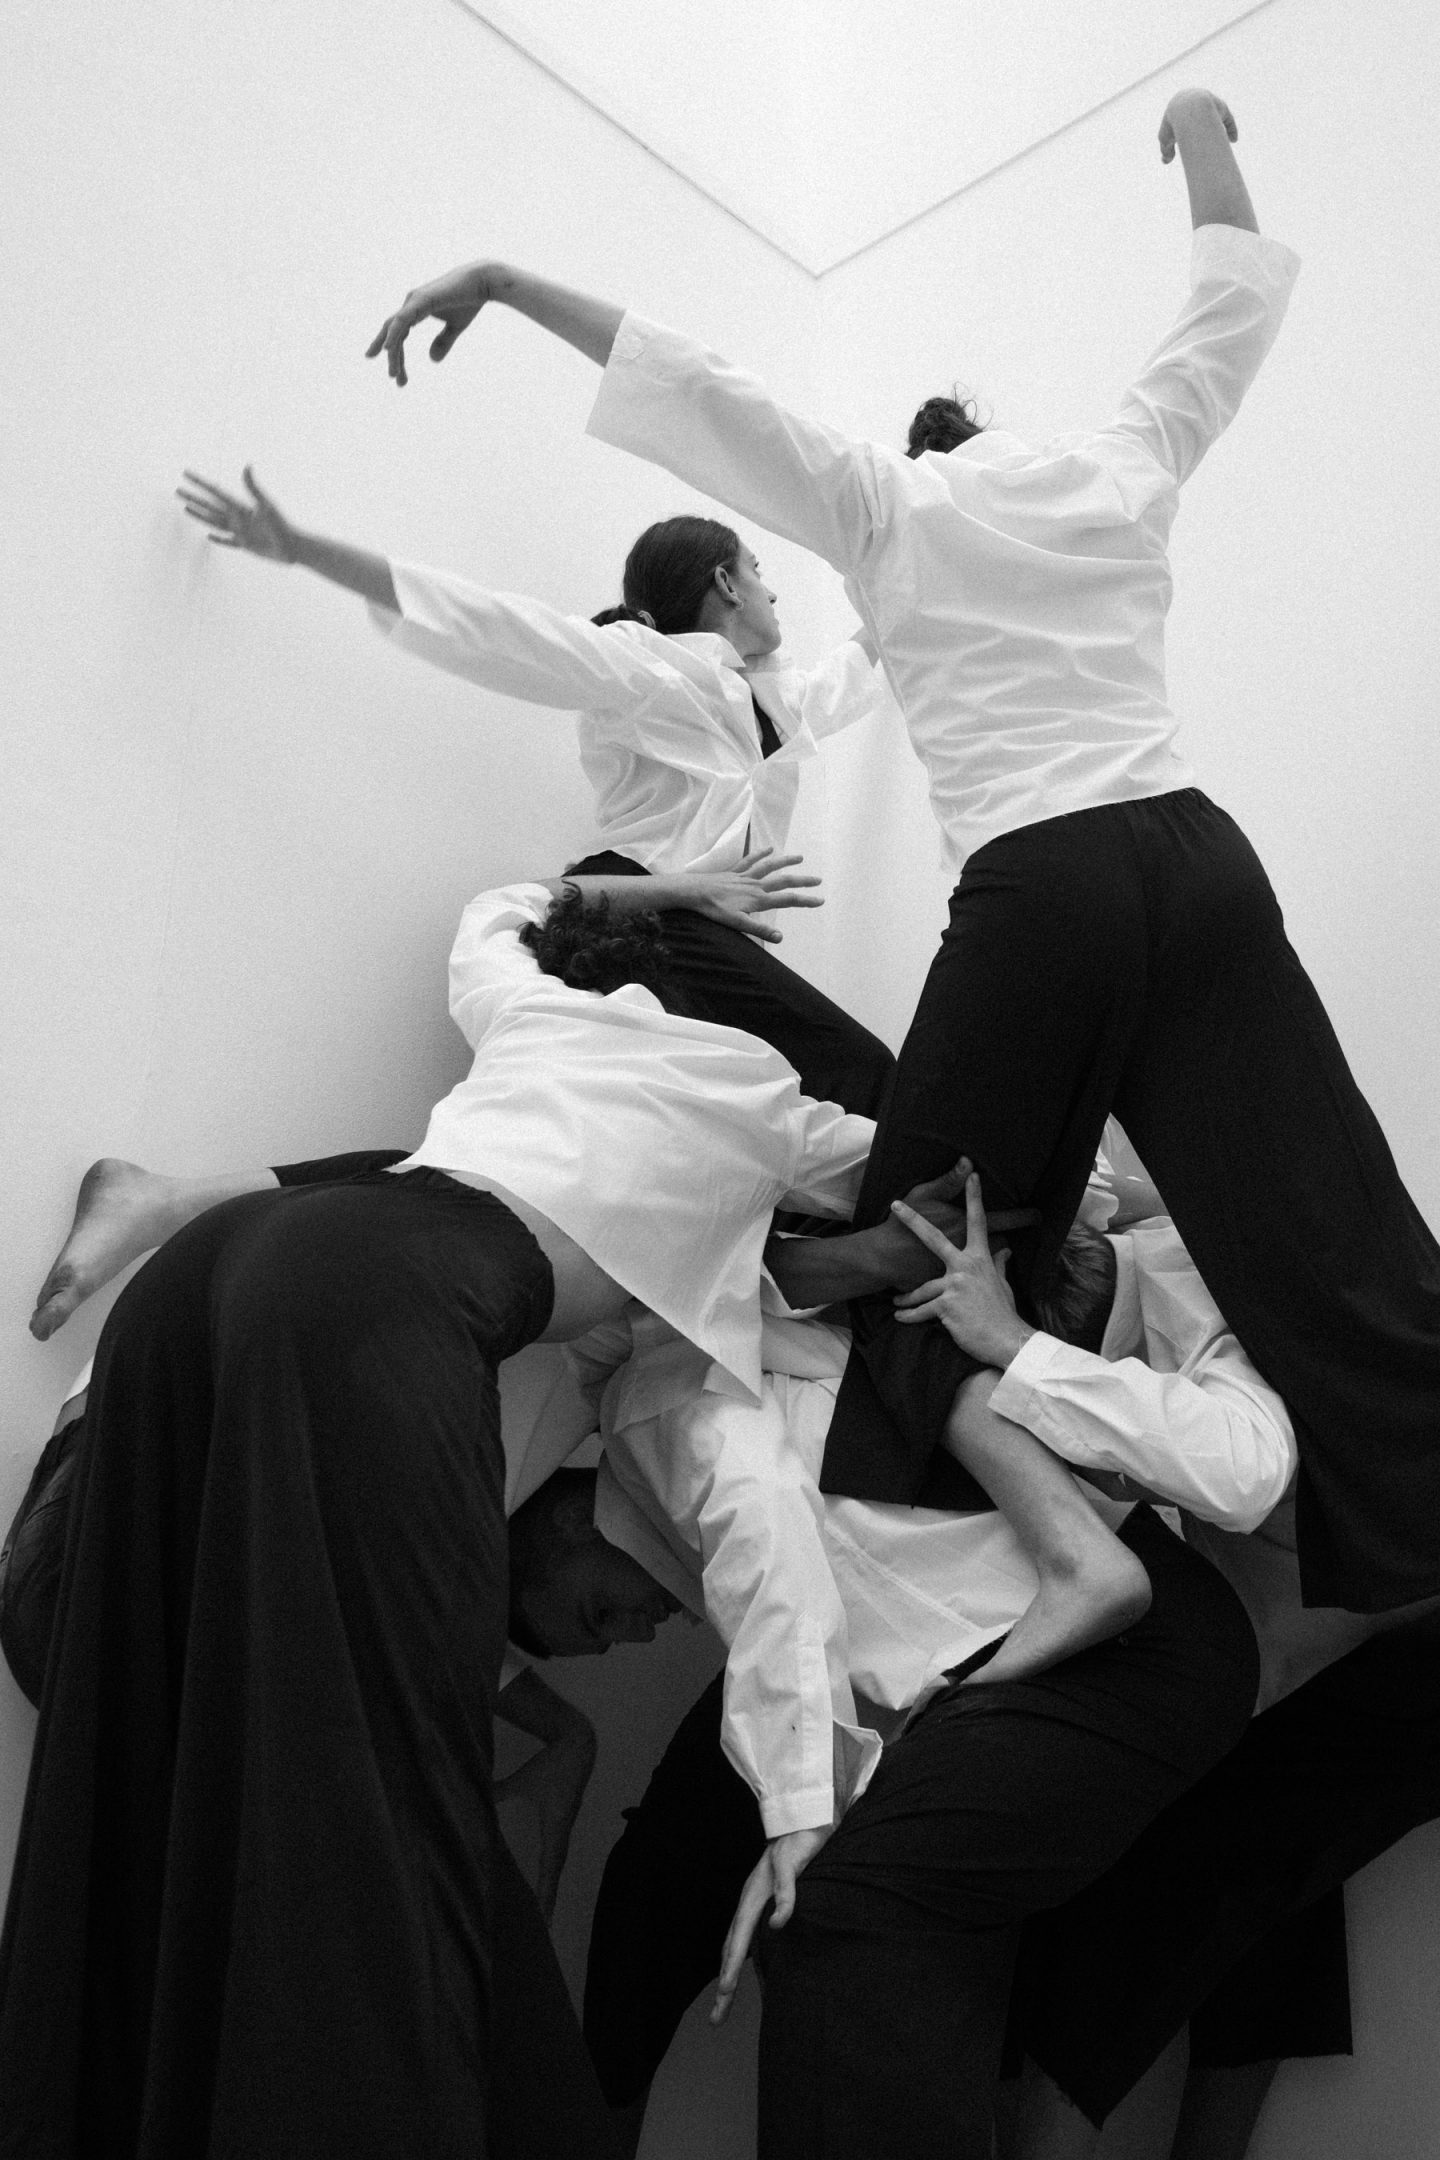 iGNANT-Photography-Paul-Phung-Dance-013